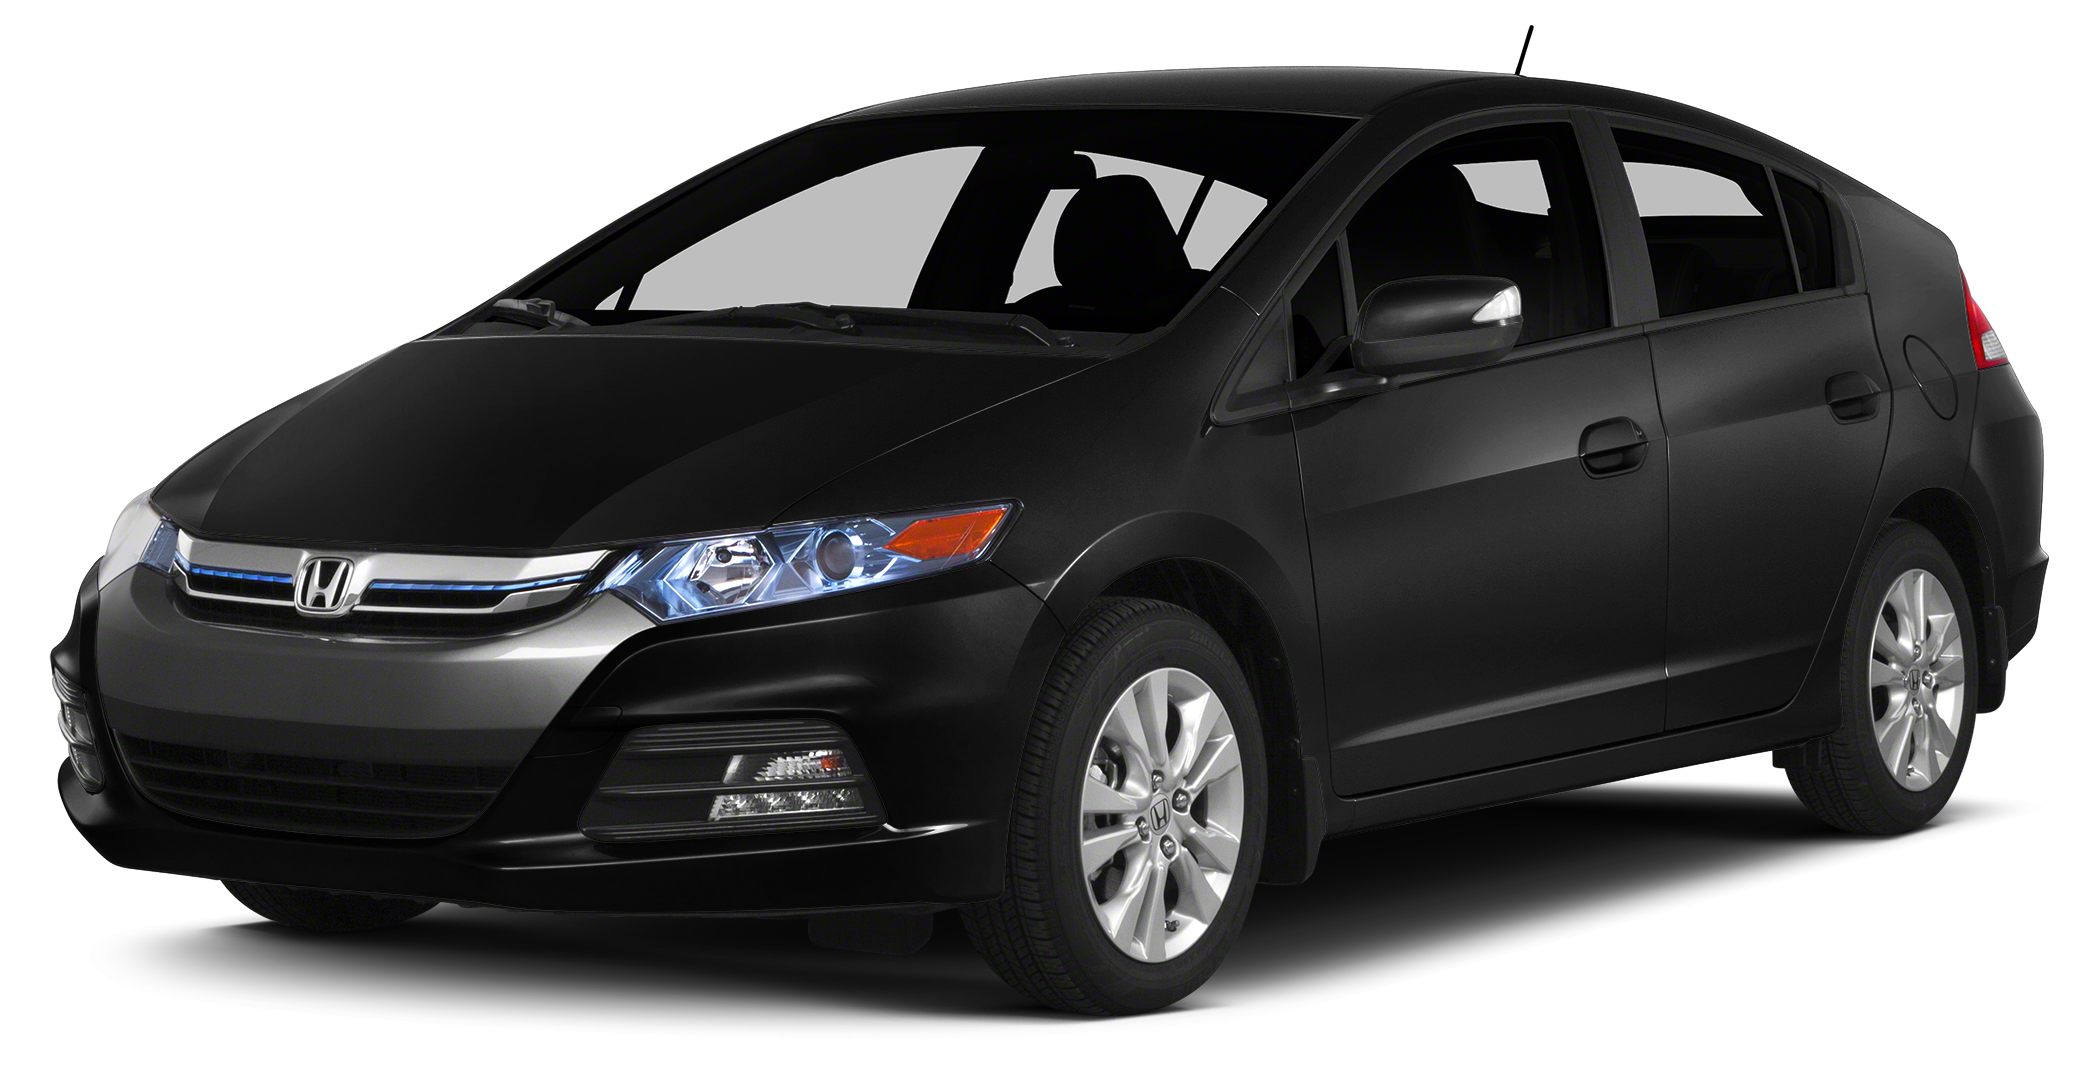 2014 Honda Insight LX CARFAX 1-Owner ONLY 21206 Miles Crystal Black Pearl exterior and Gray int